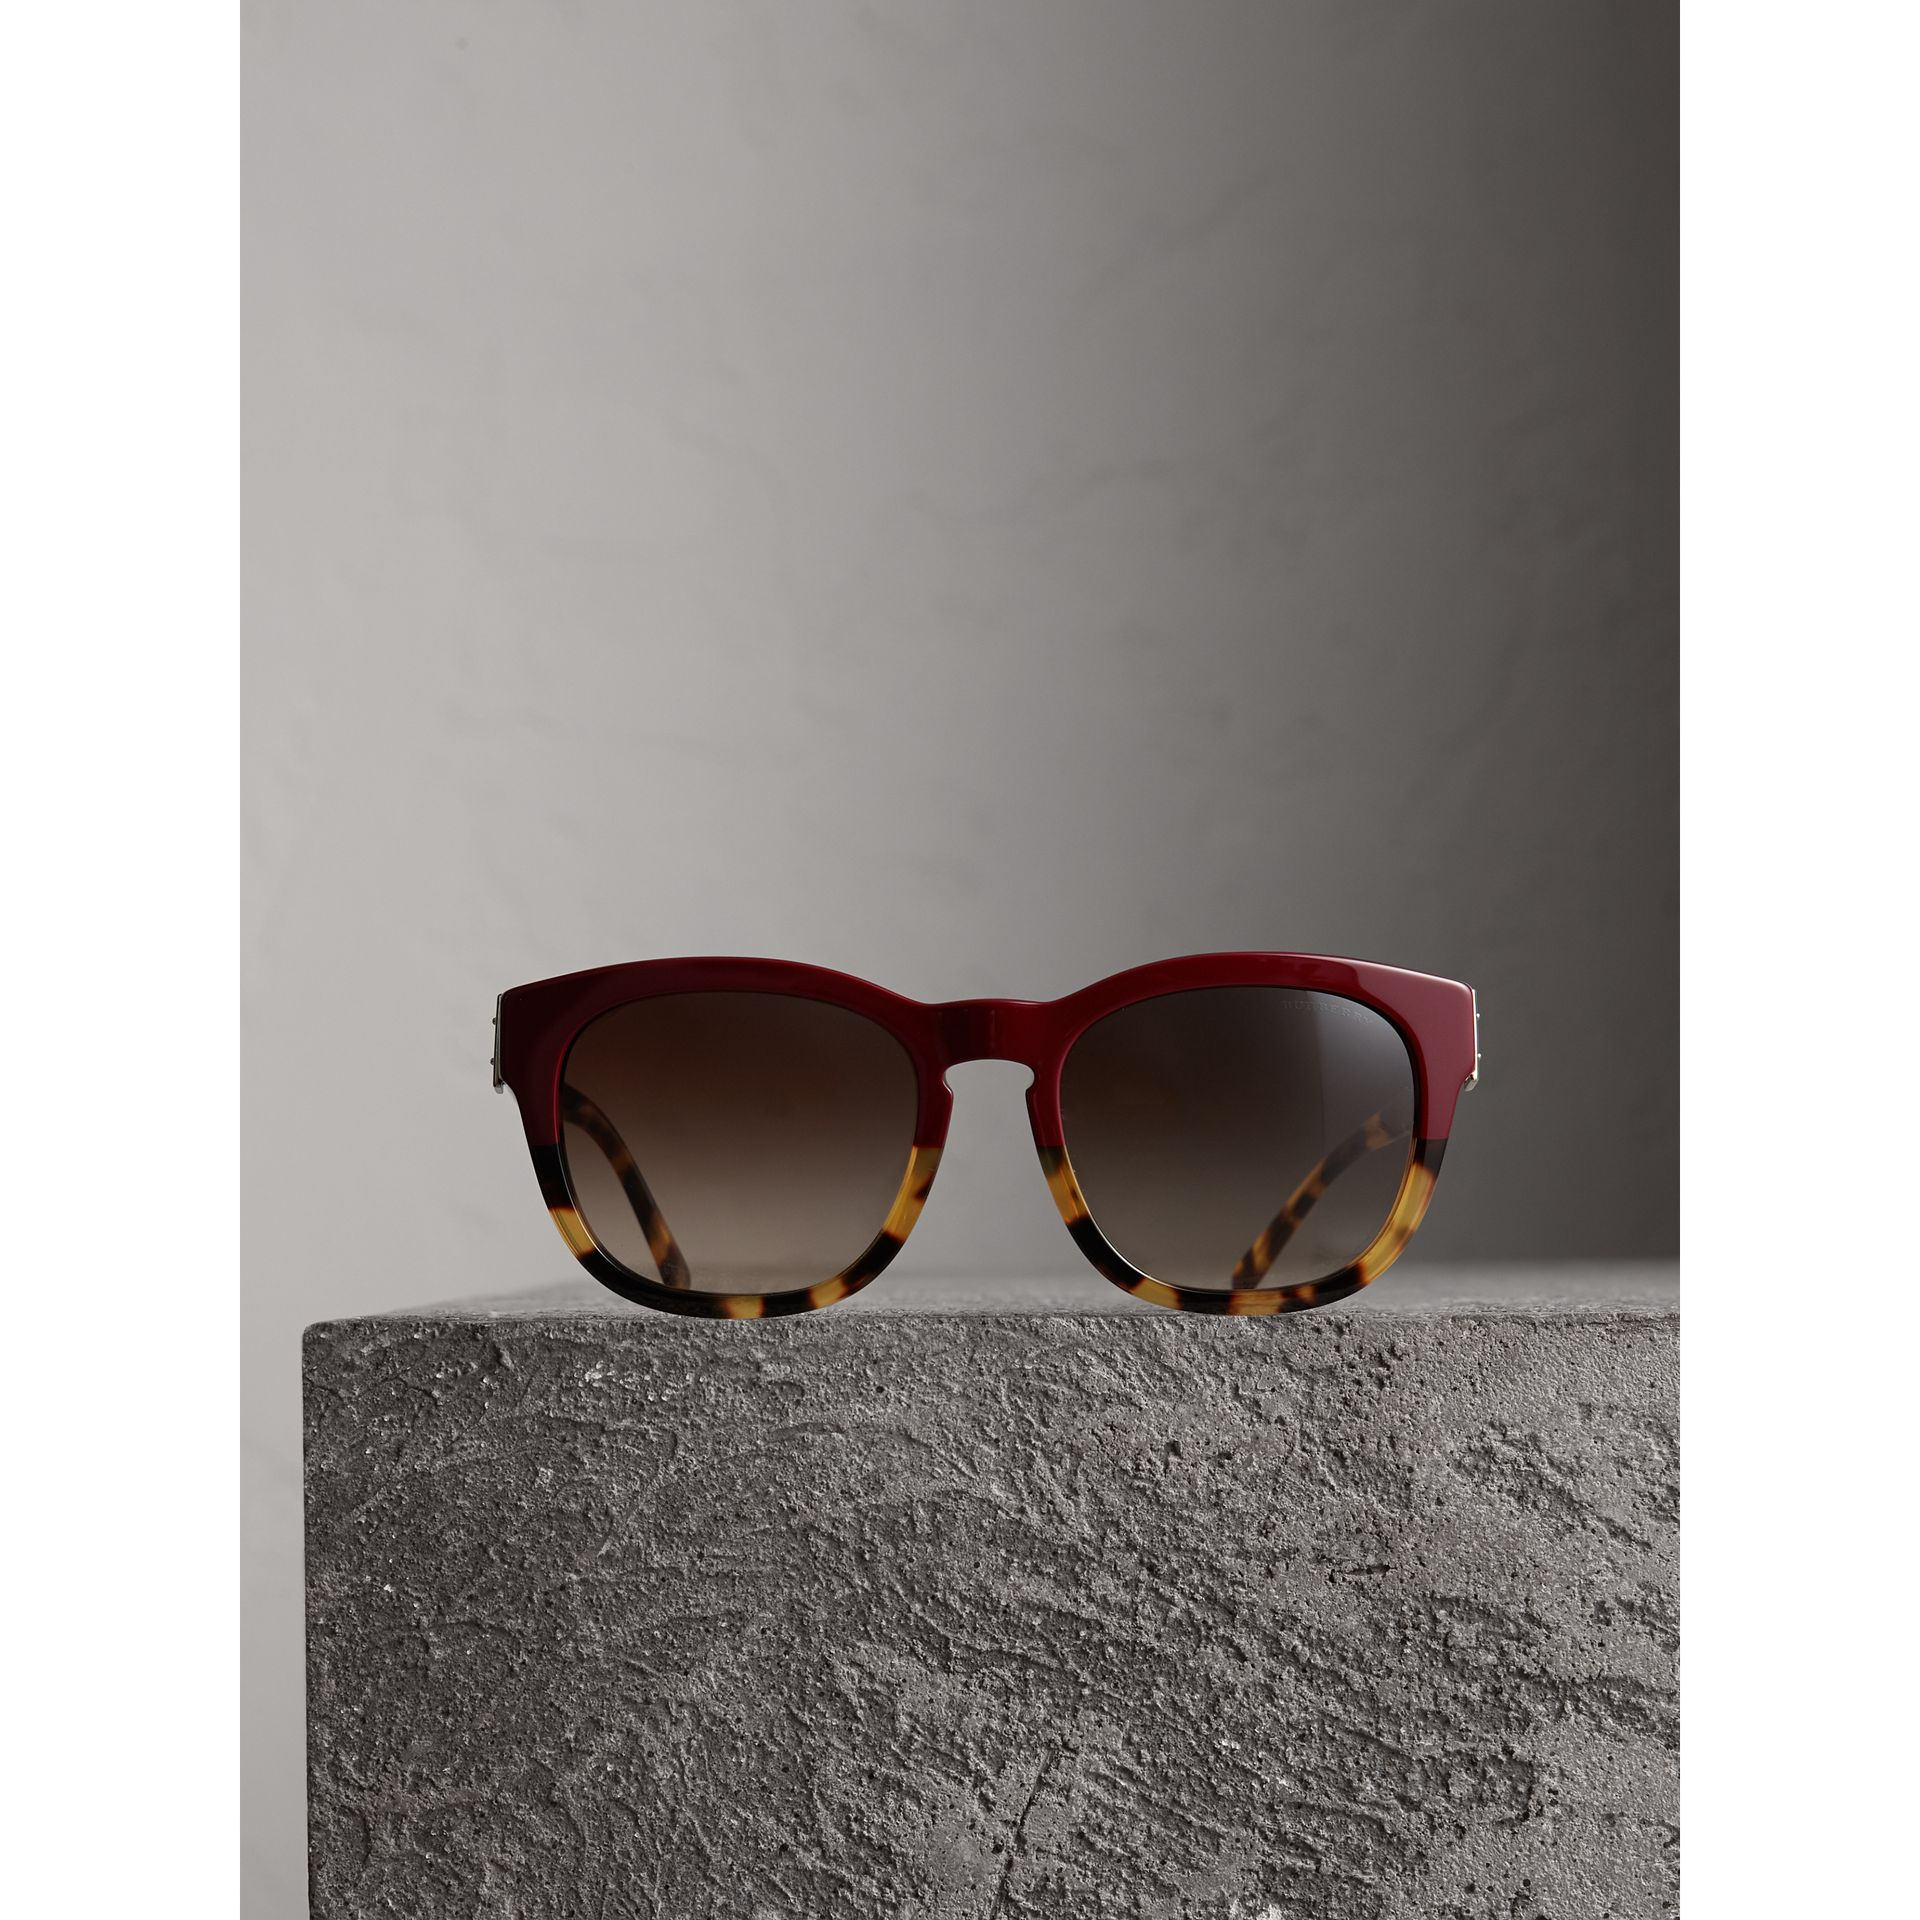 Buckle Detail Square Frame Sunglasses in Burgundy - Women | Burberry Australia - gallery image 4